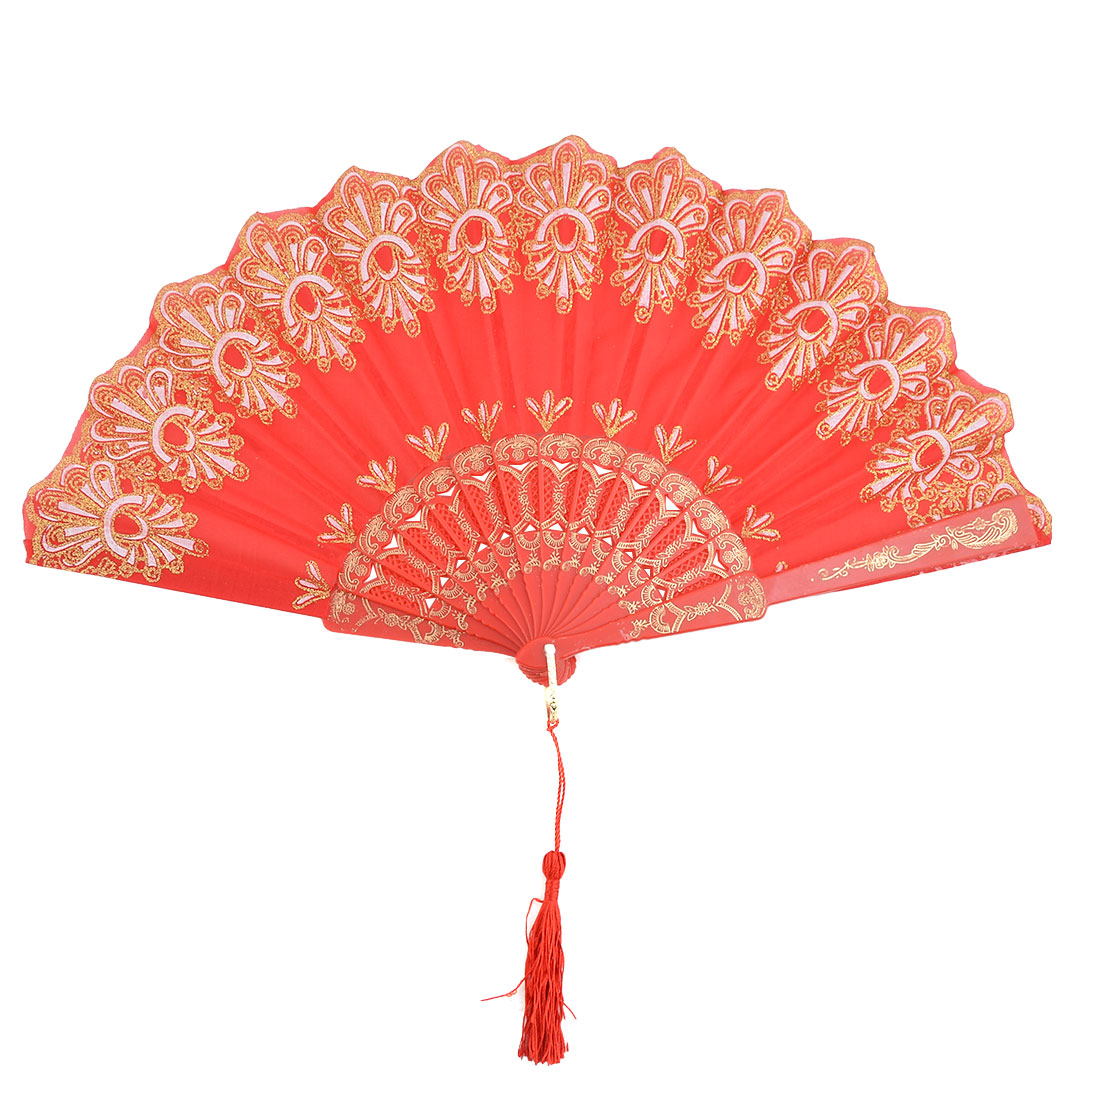 Lady Plastic Frame Floral Print Folding Dancing Cooling Hand Fan Red 23.5cm Length